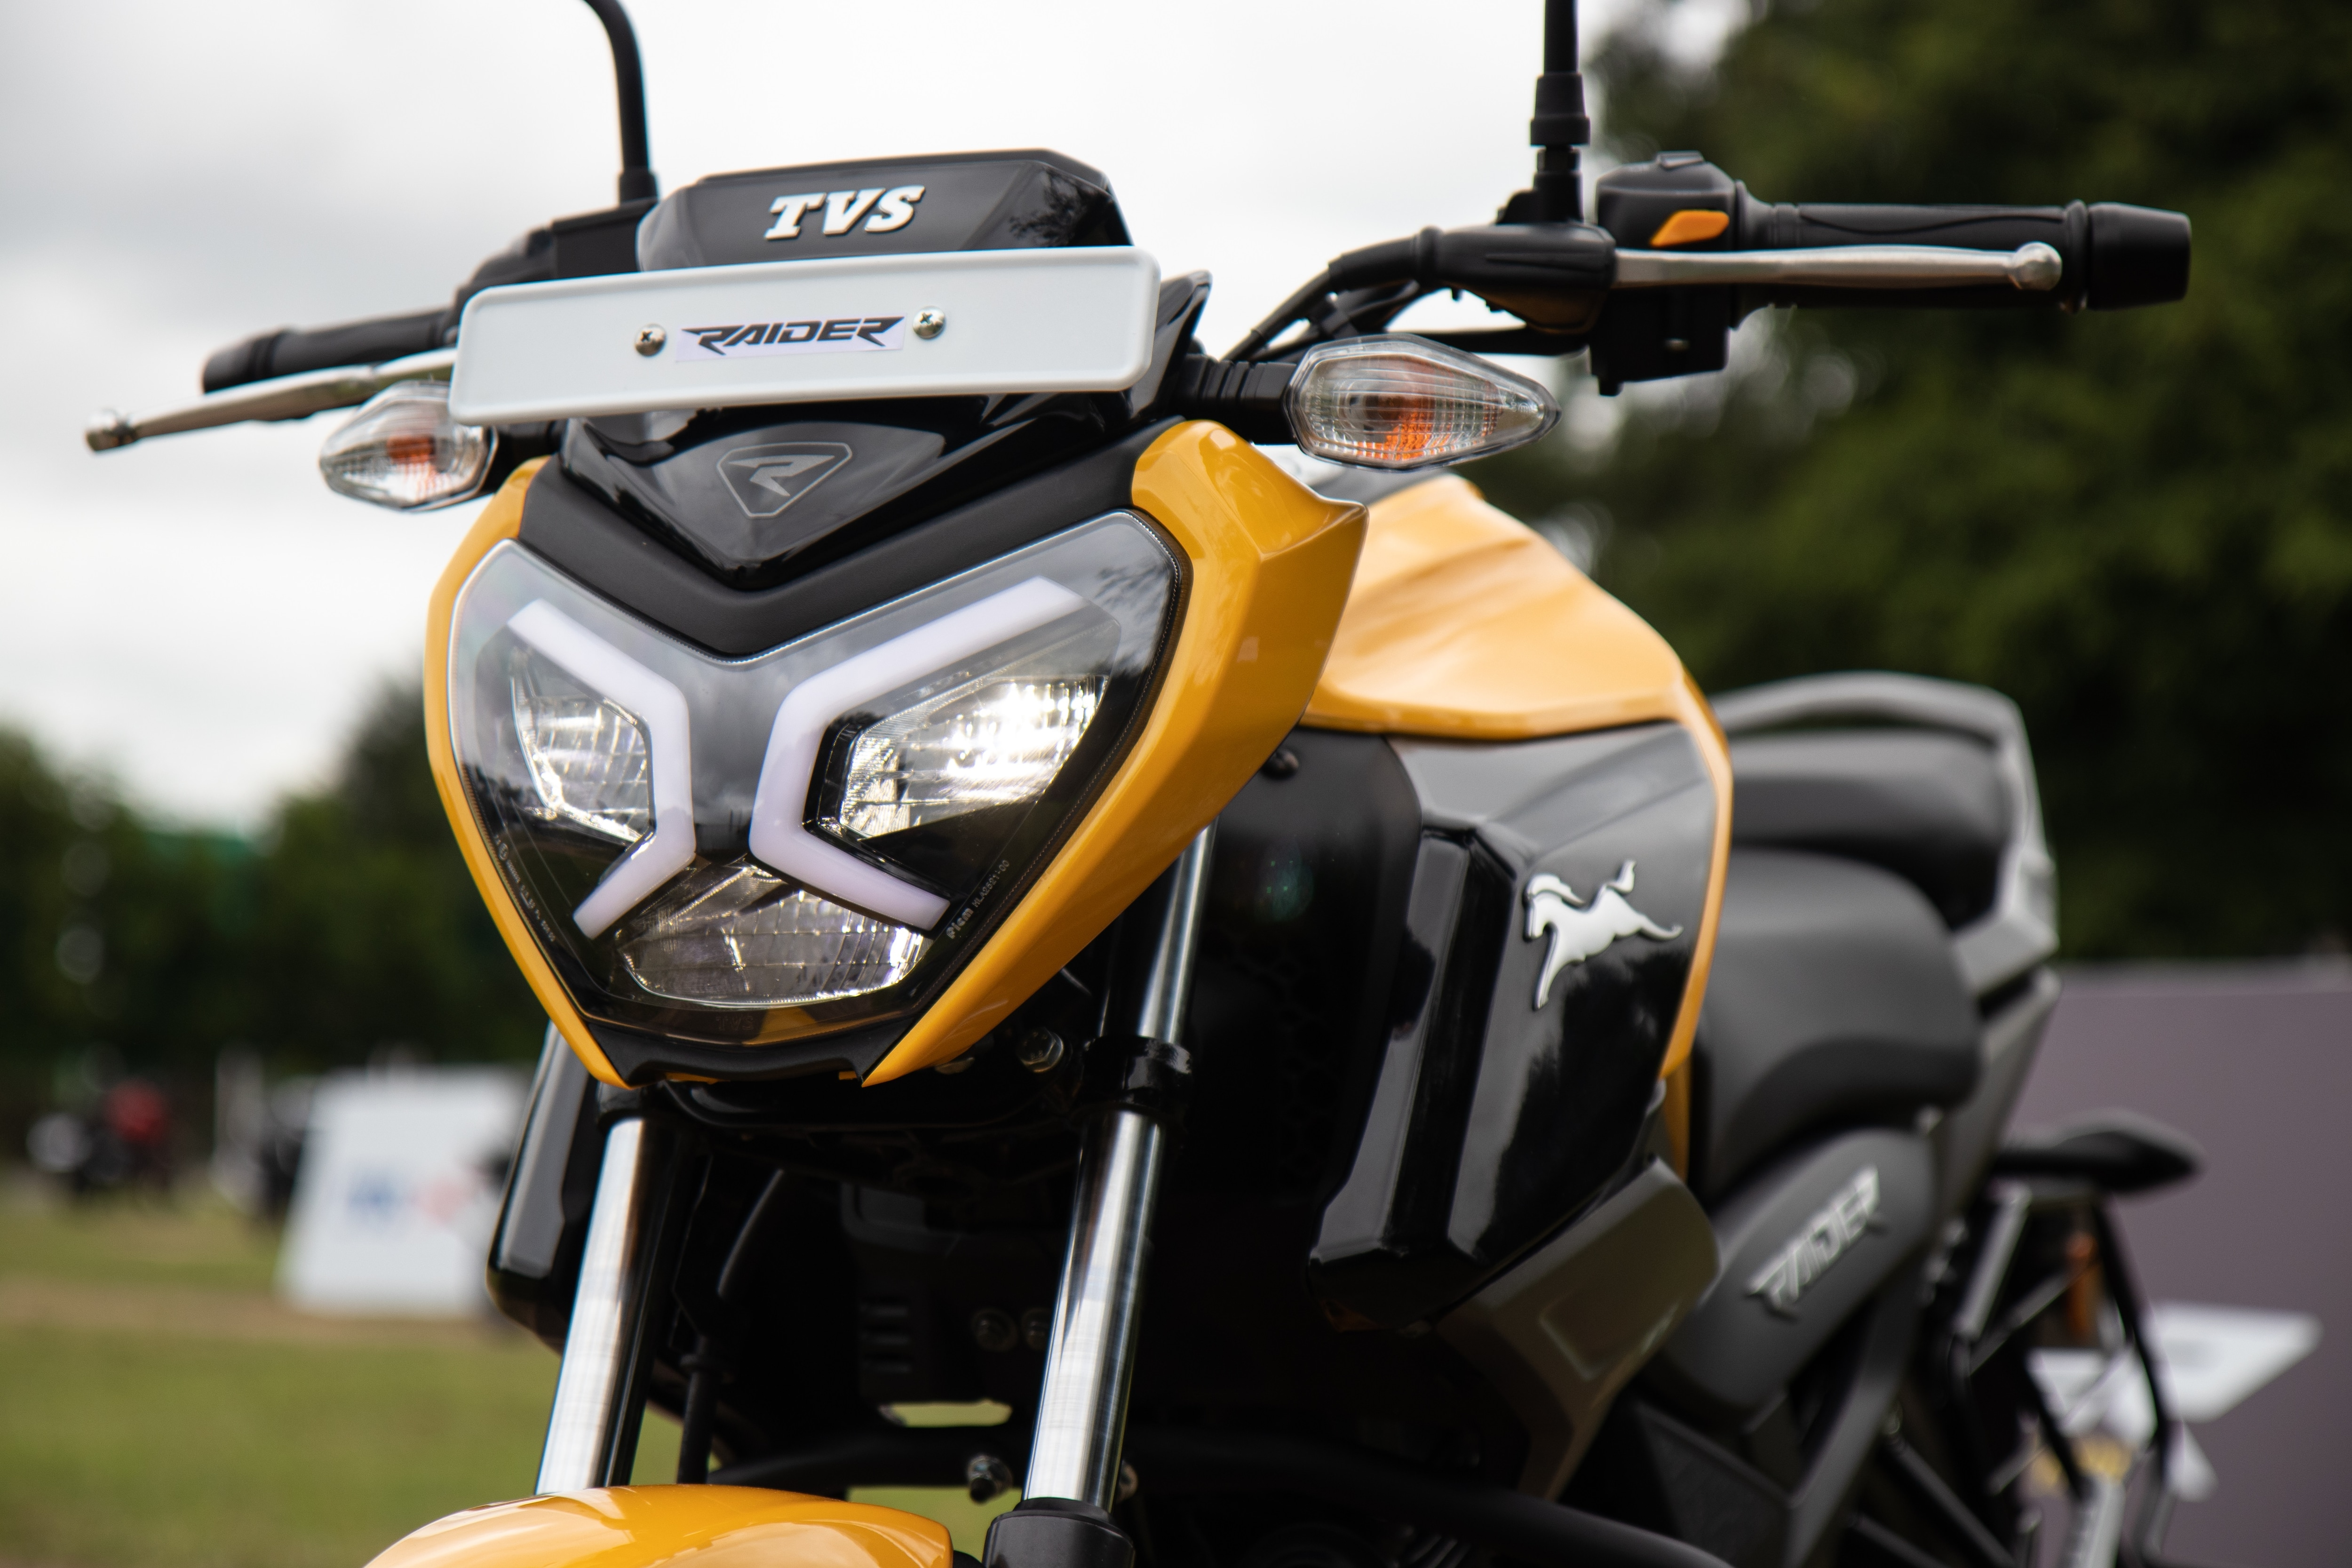 At the front of the TVS Raider sits an LED headlamp with unique-looking LED DRLs placed inside the assembly. While the headlamp is LED, indicators are traditional halogen units.